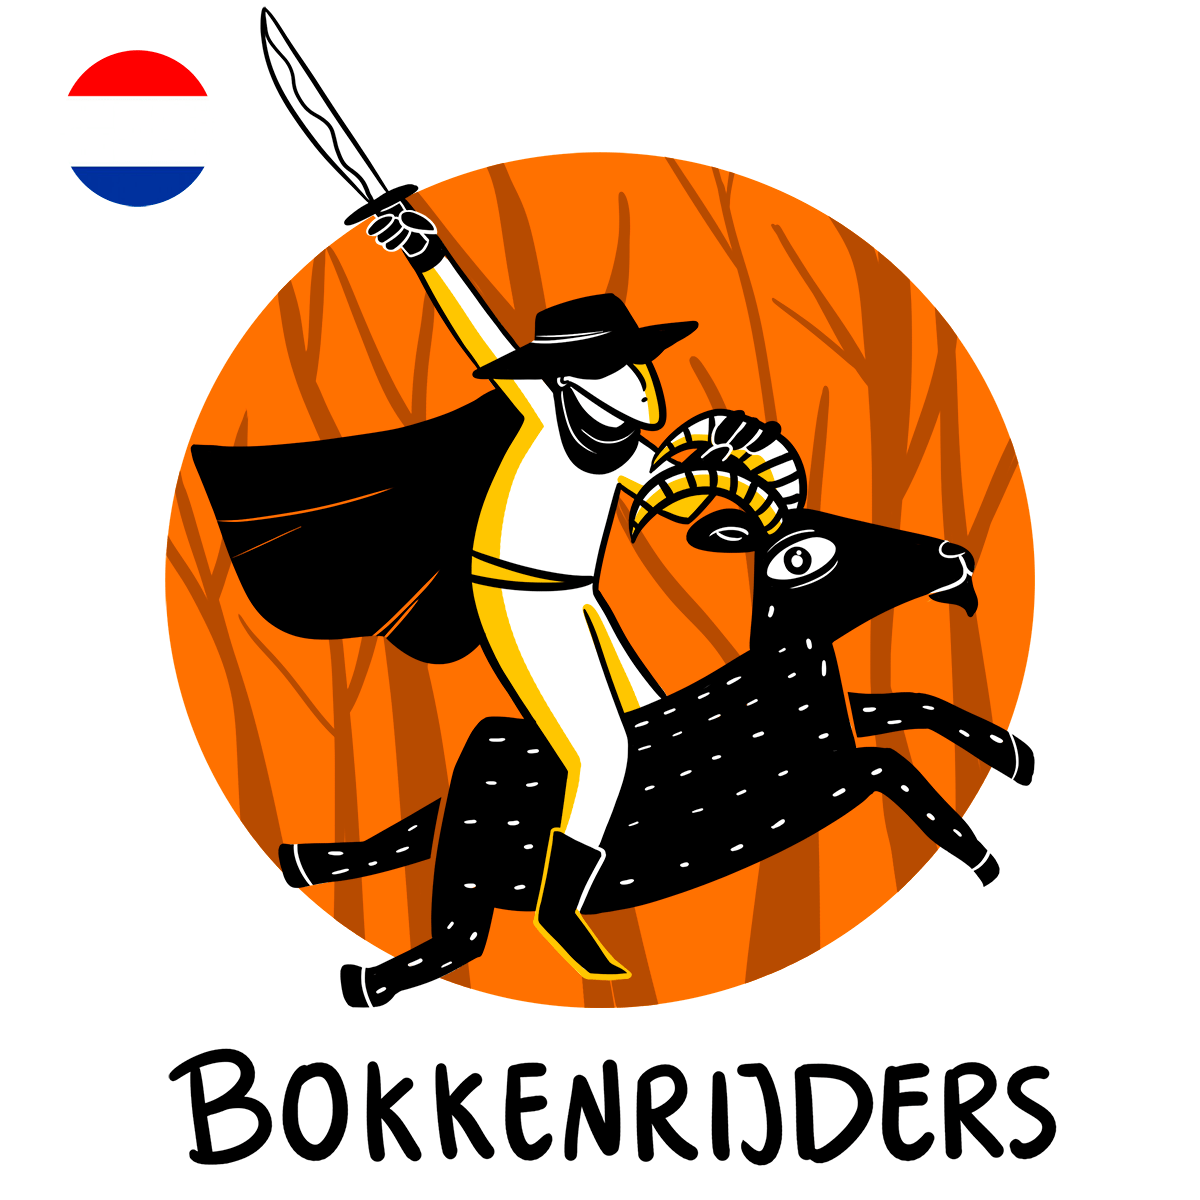 Bokkenrijders, illustration of thieves riding goats